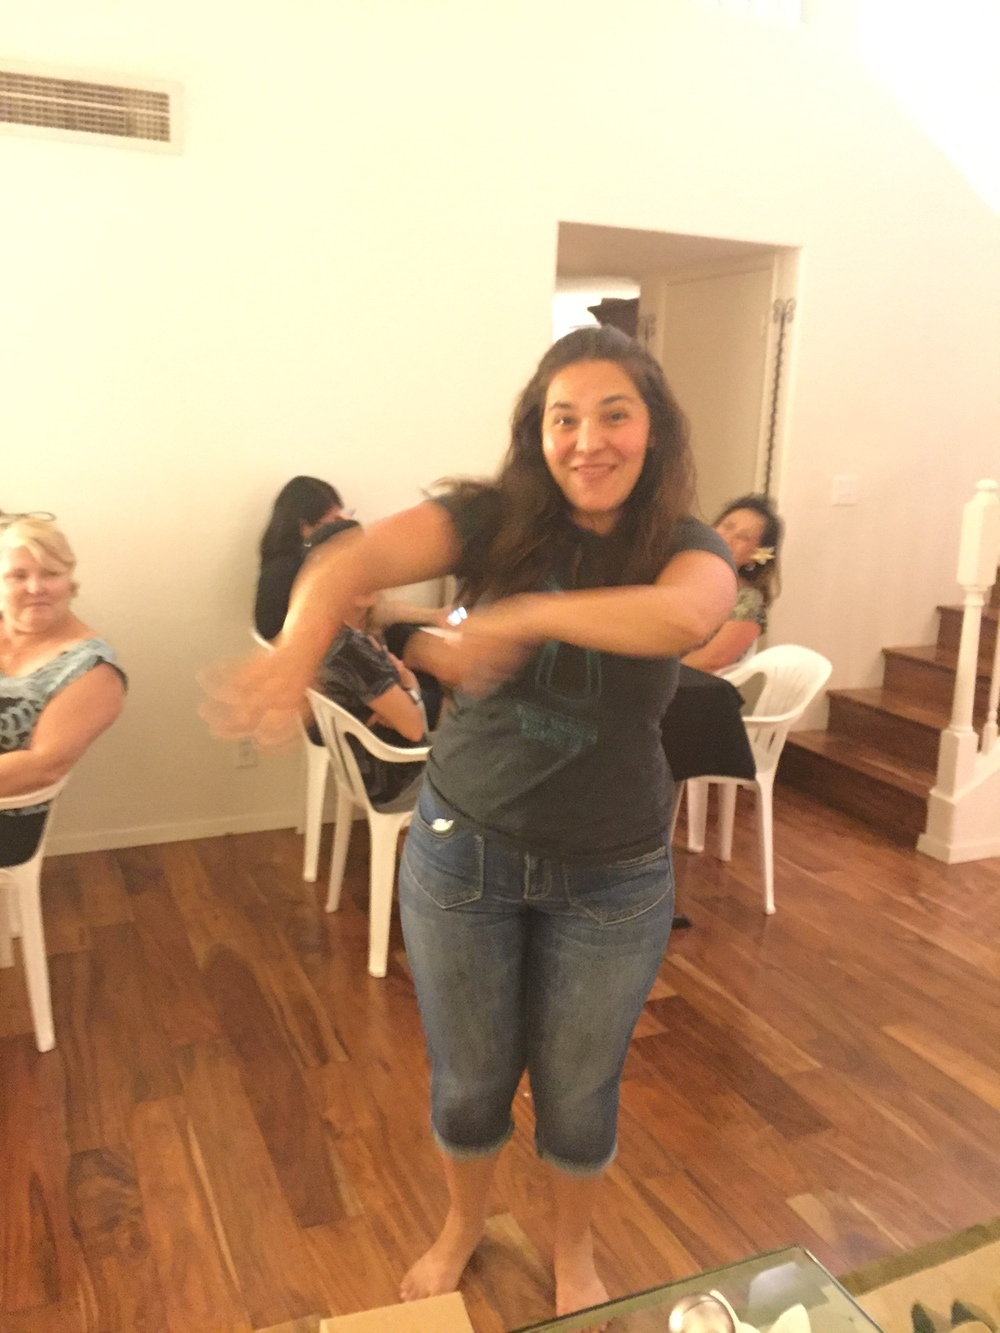 Elisa dancing at Bunco - www.stampedwithaloha.com